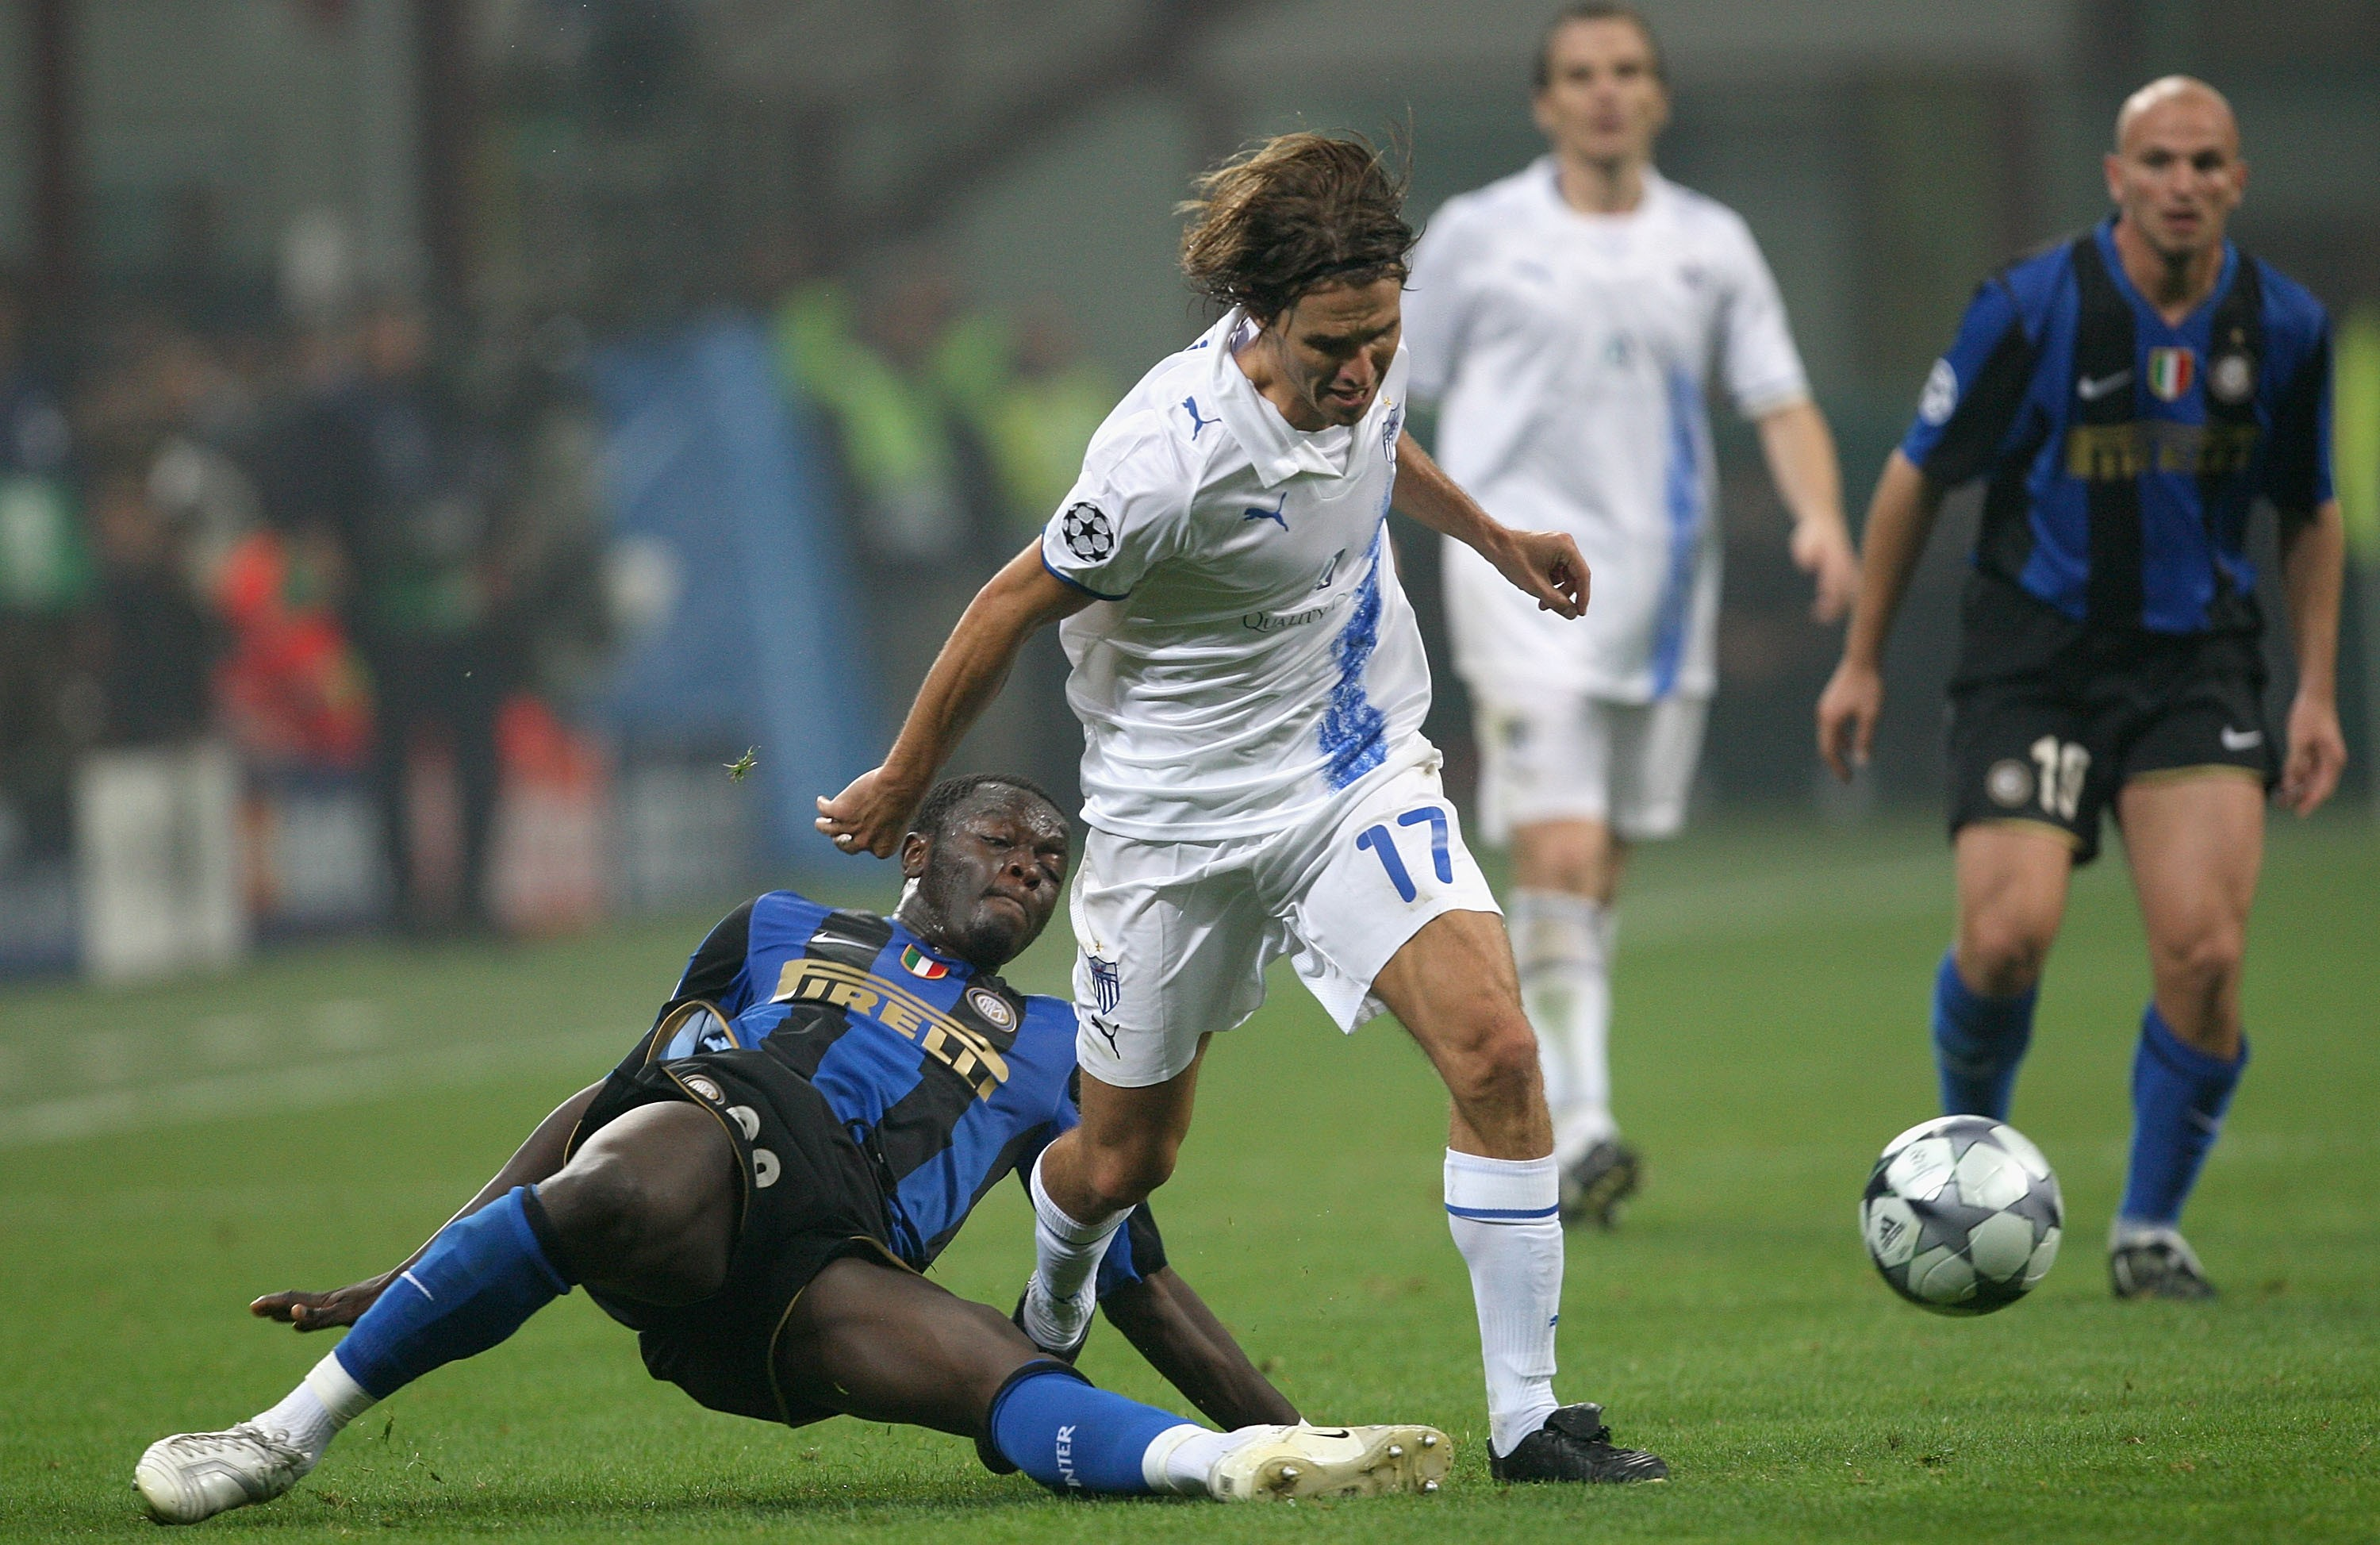 Inter-Milan-v-Anorthosis-Famagusta-UEFA-Champions-League-1542806431.jpg